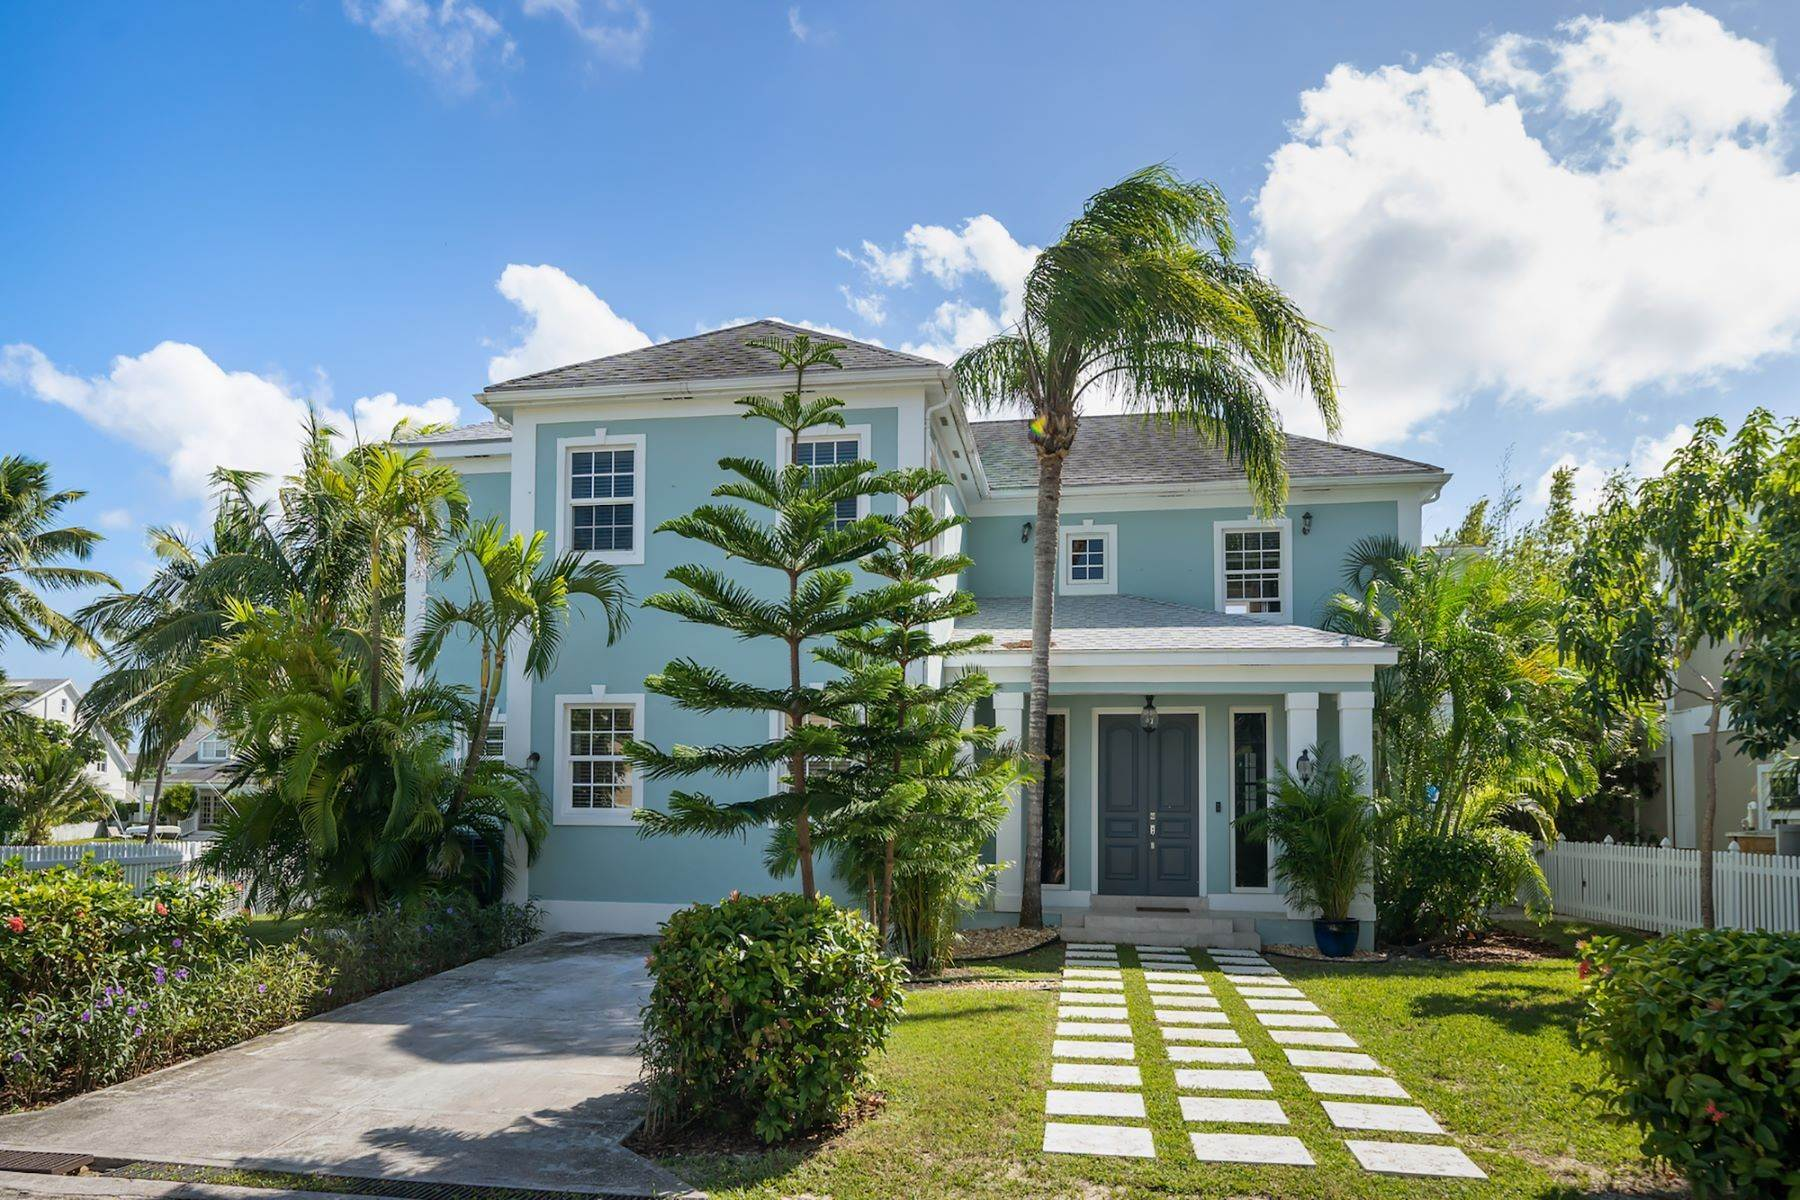 Single Family Homes for Sale at 12 Sand Dollar Island, Sandyport Sandyport, Cable Beach, Nassau And Paradise Island Bahamas